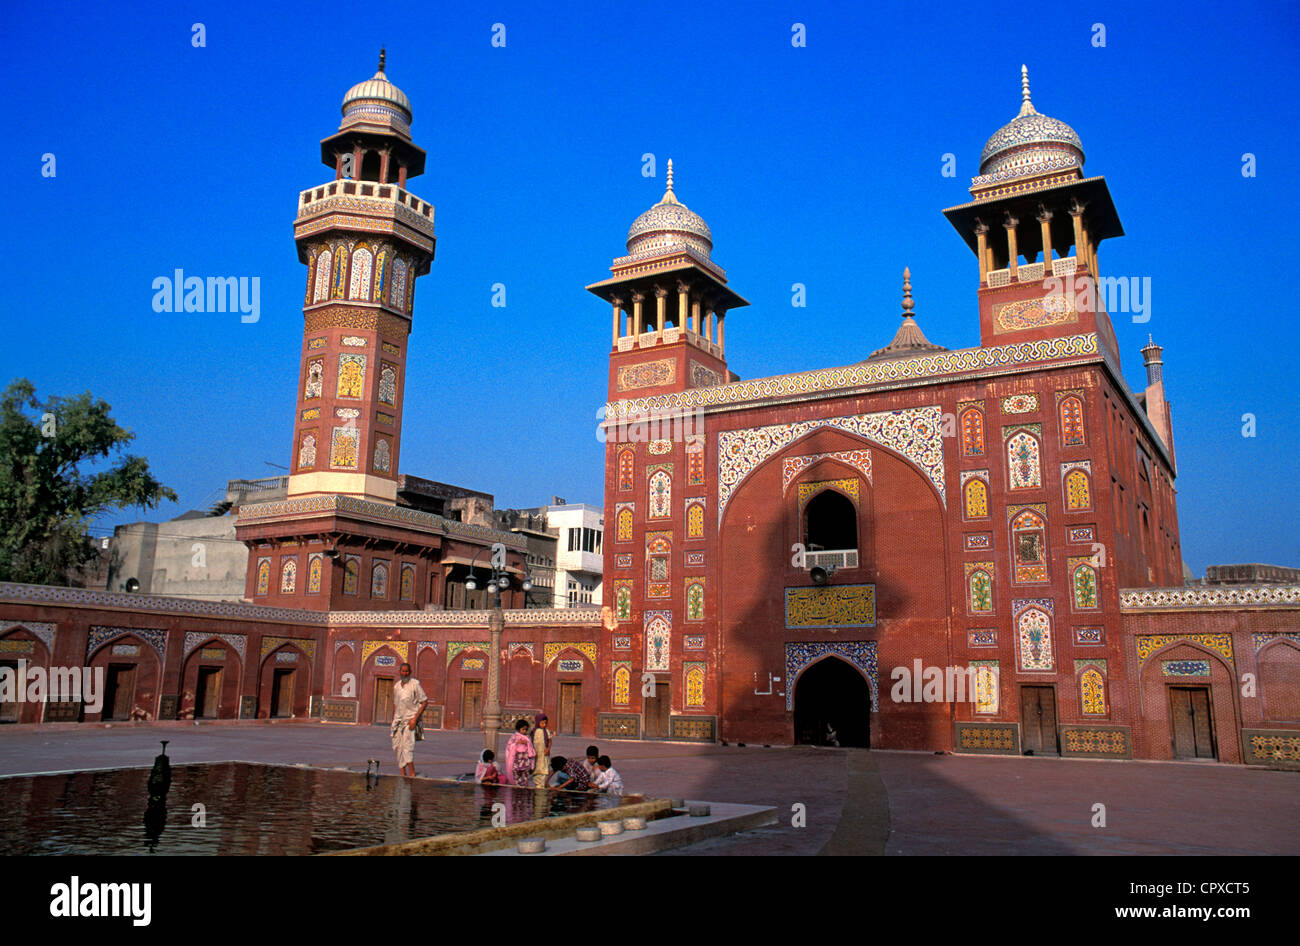 Pakistan, Lahore, Wazir Khan Mosque dated 17th century - Stock Image